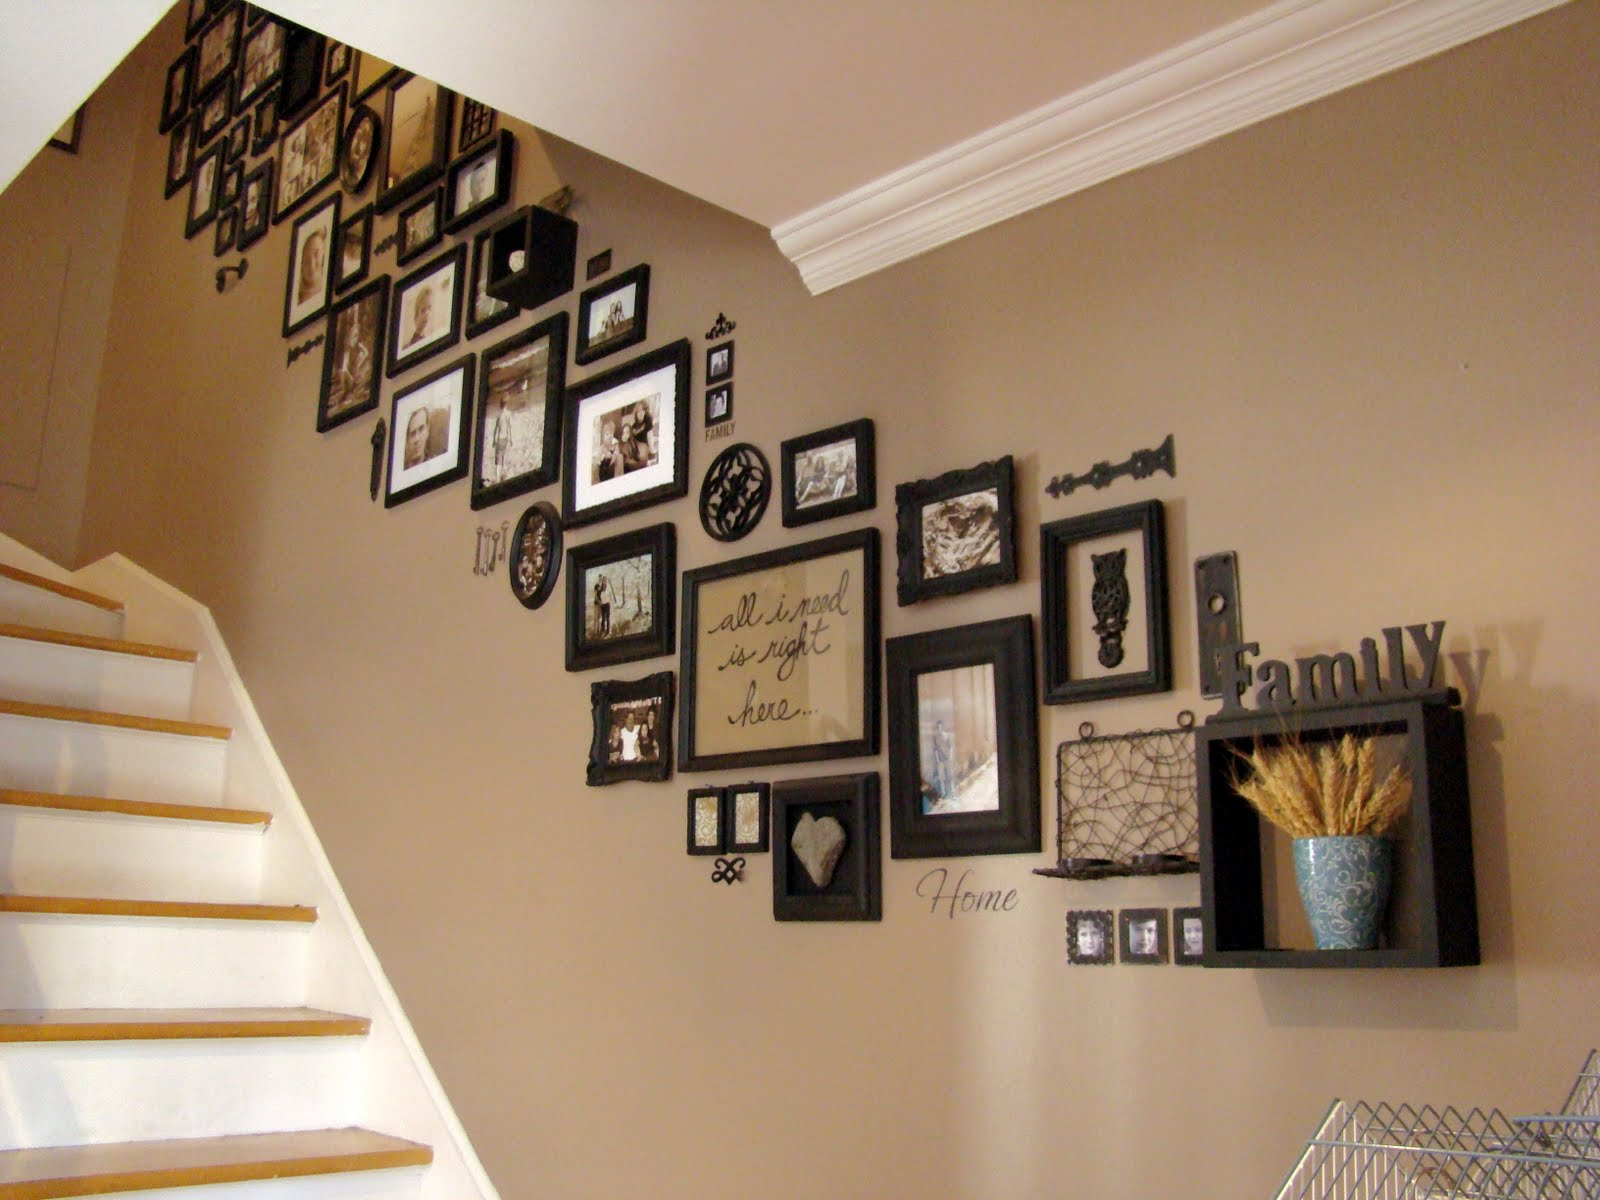 How should I place my photo frames? PIC NOW ADDED! - The ...